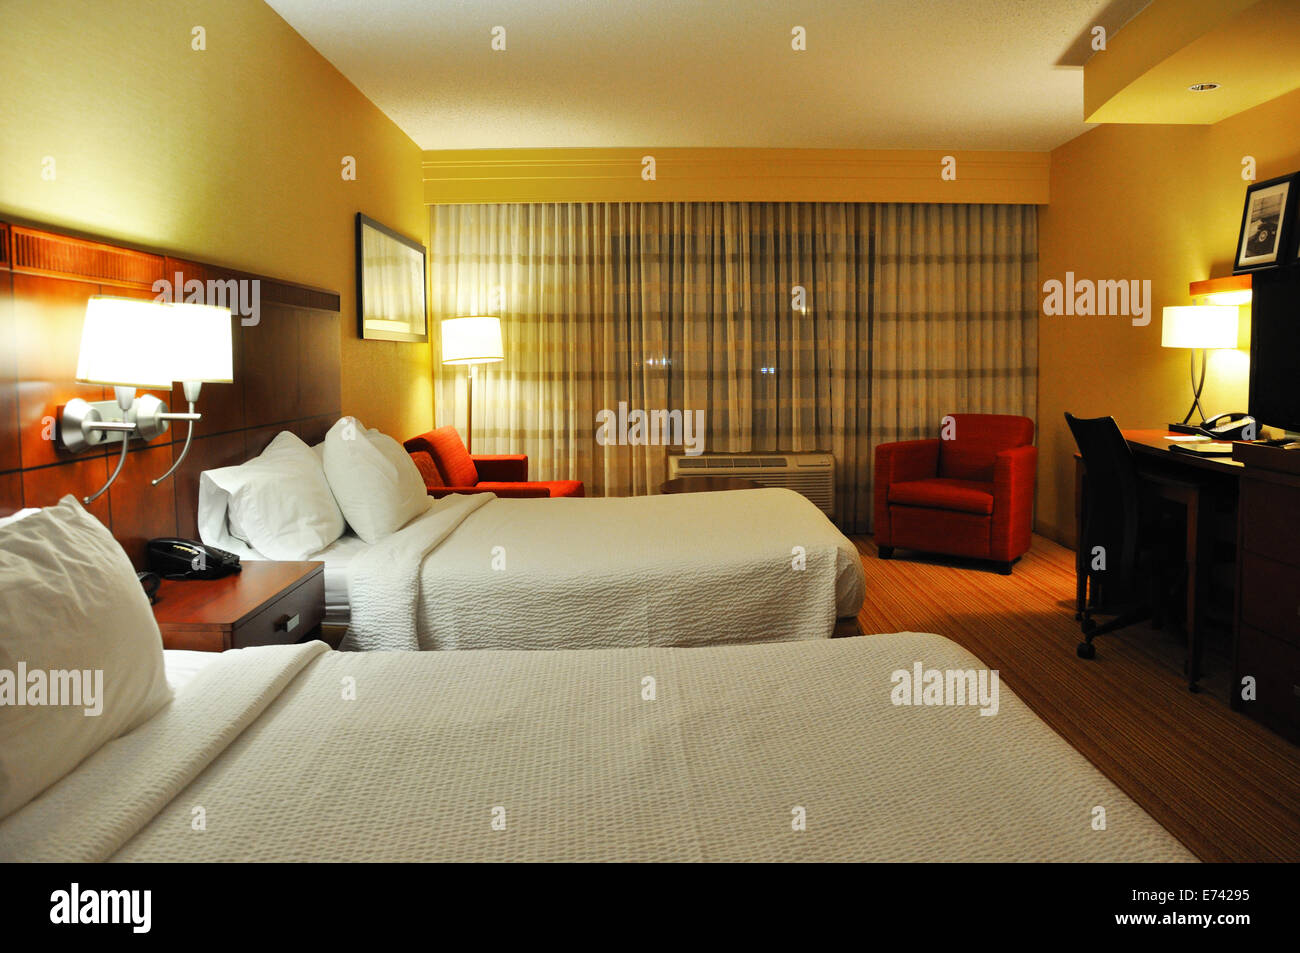 Us Hotel Chain Stock Photos & Us Hotel Chain Stock Images - Alamy